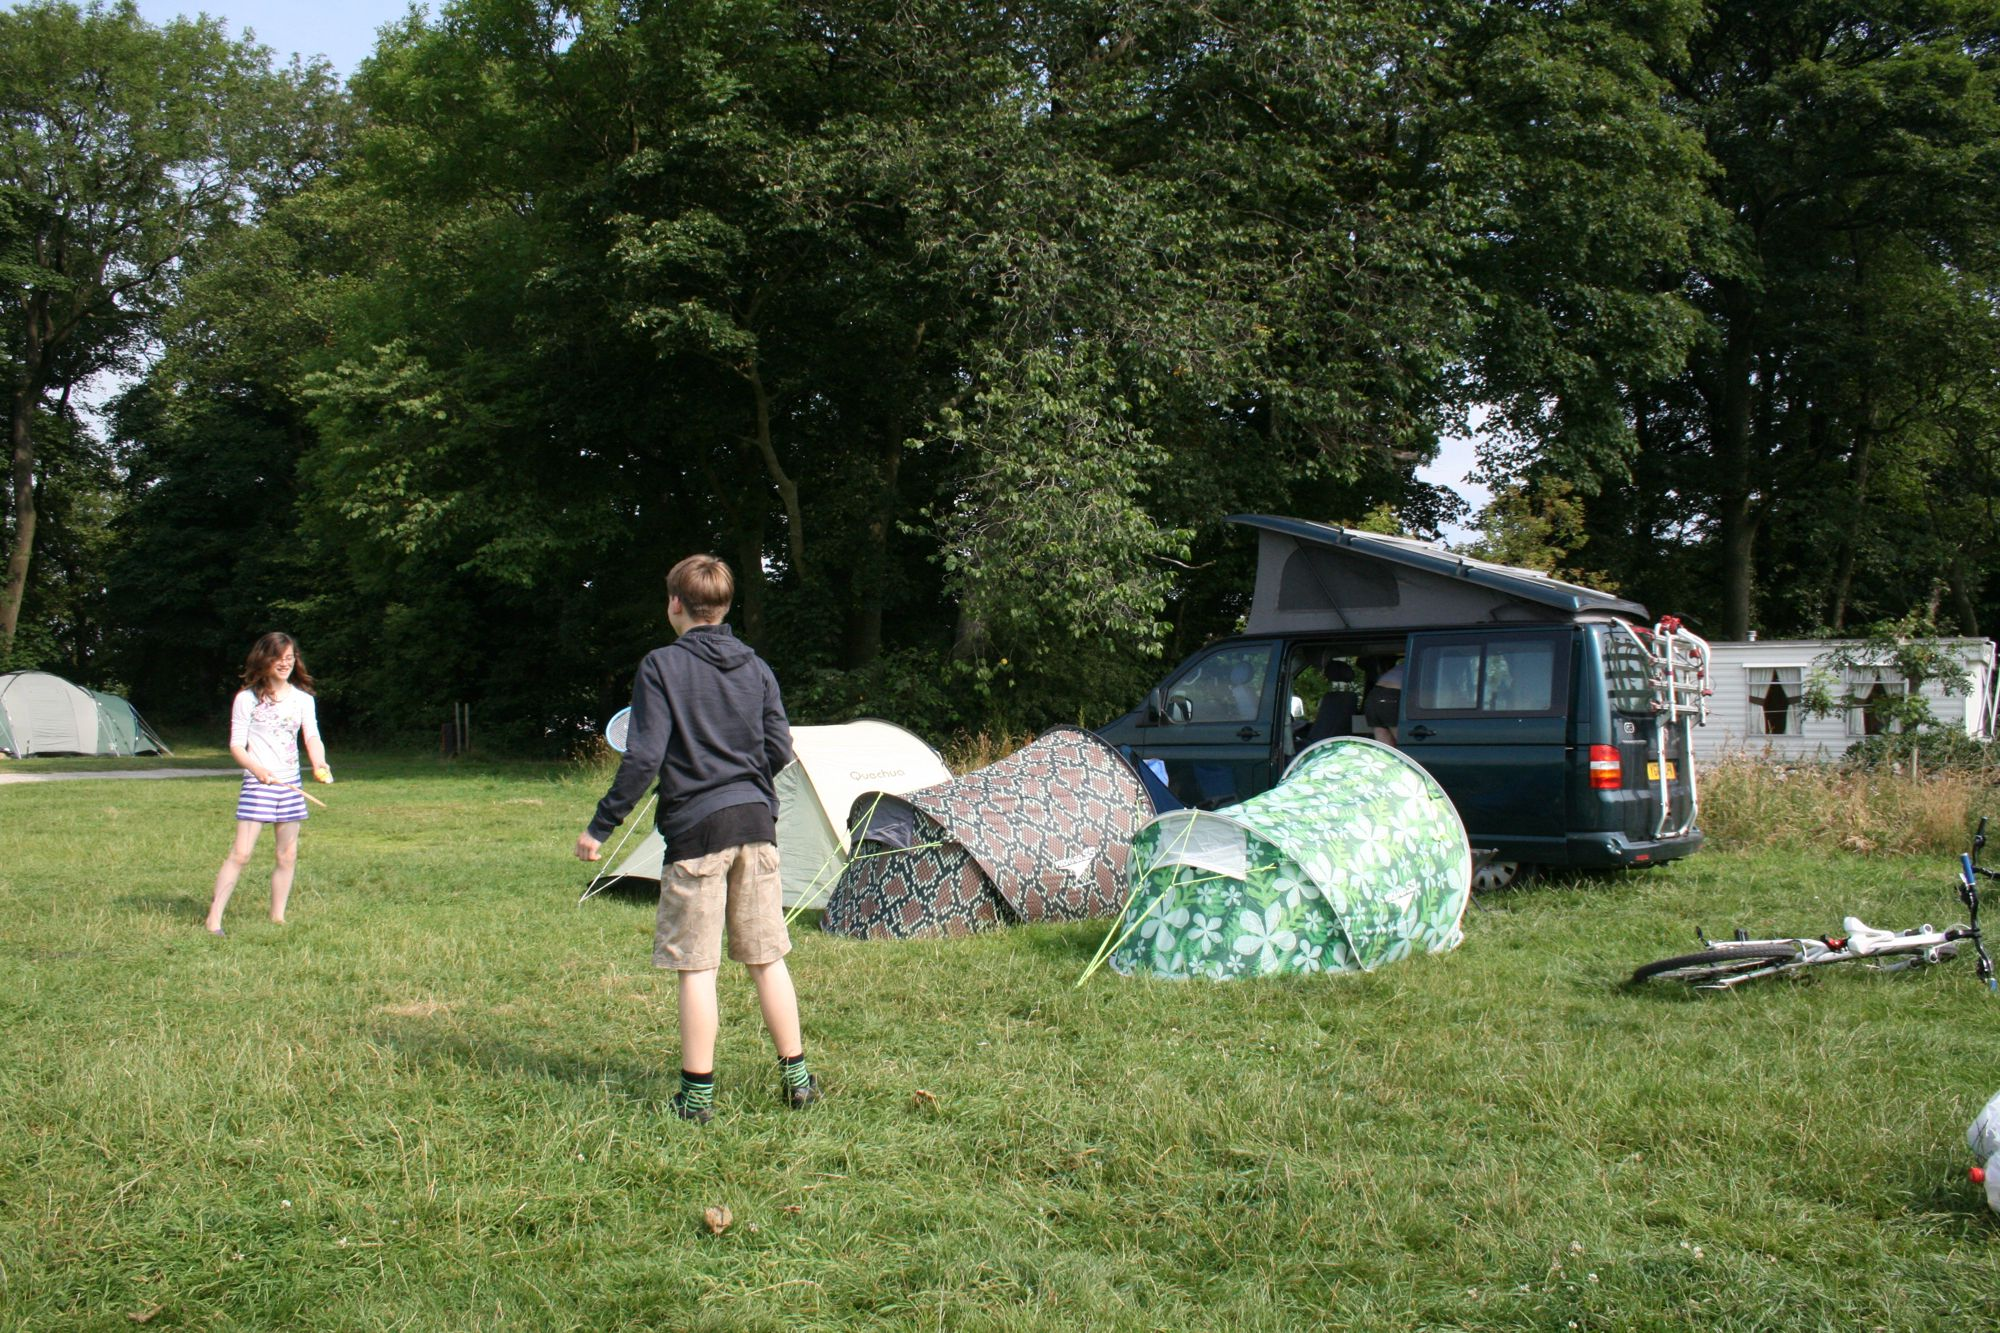 With plenty of room for the kids to roam, this back-to-basics camping on a family-only field has great views thrown in.